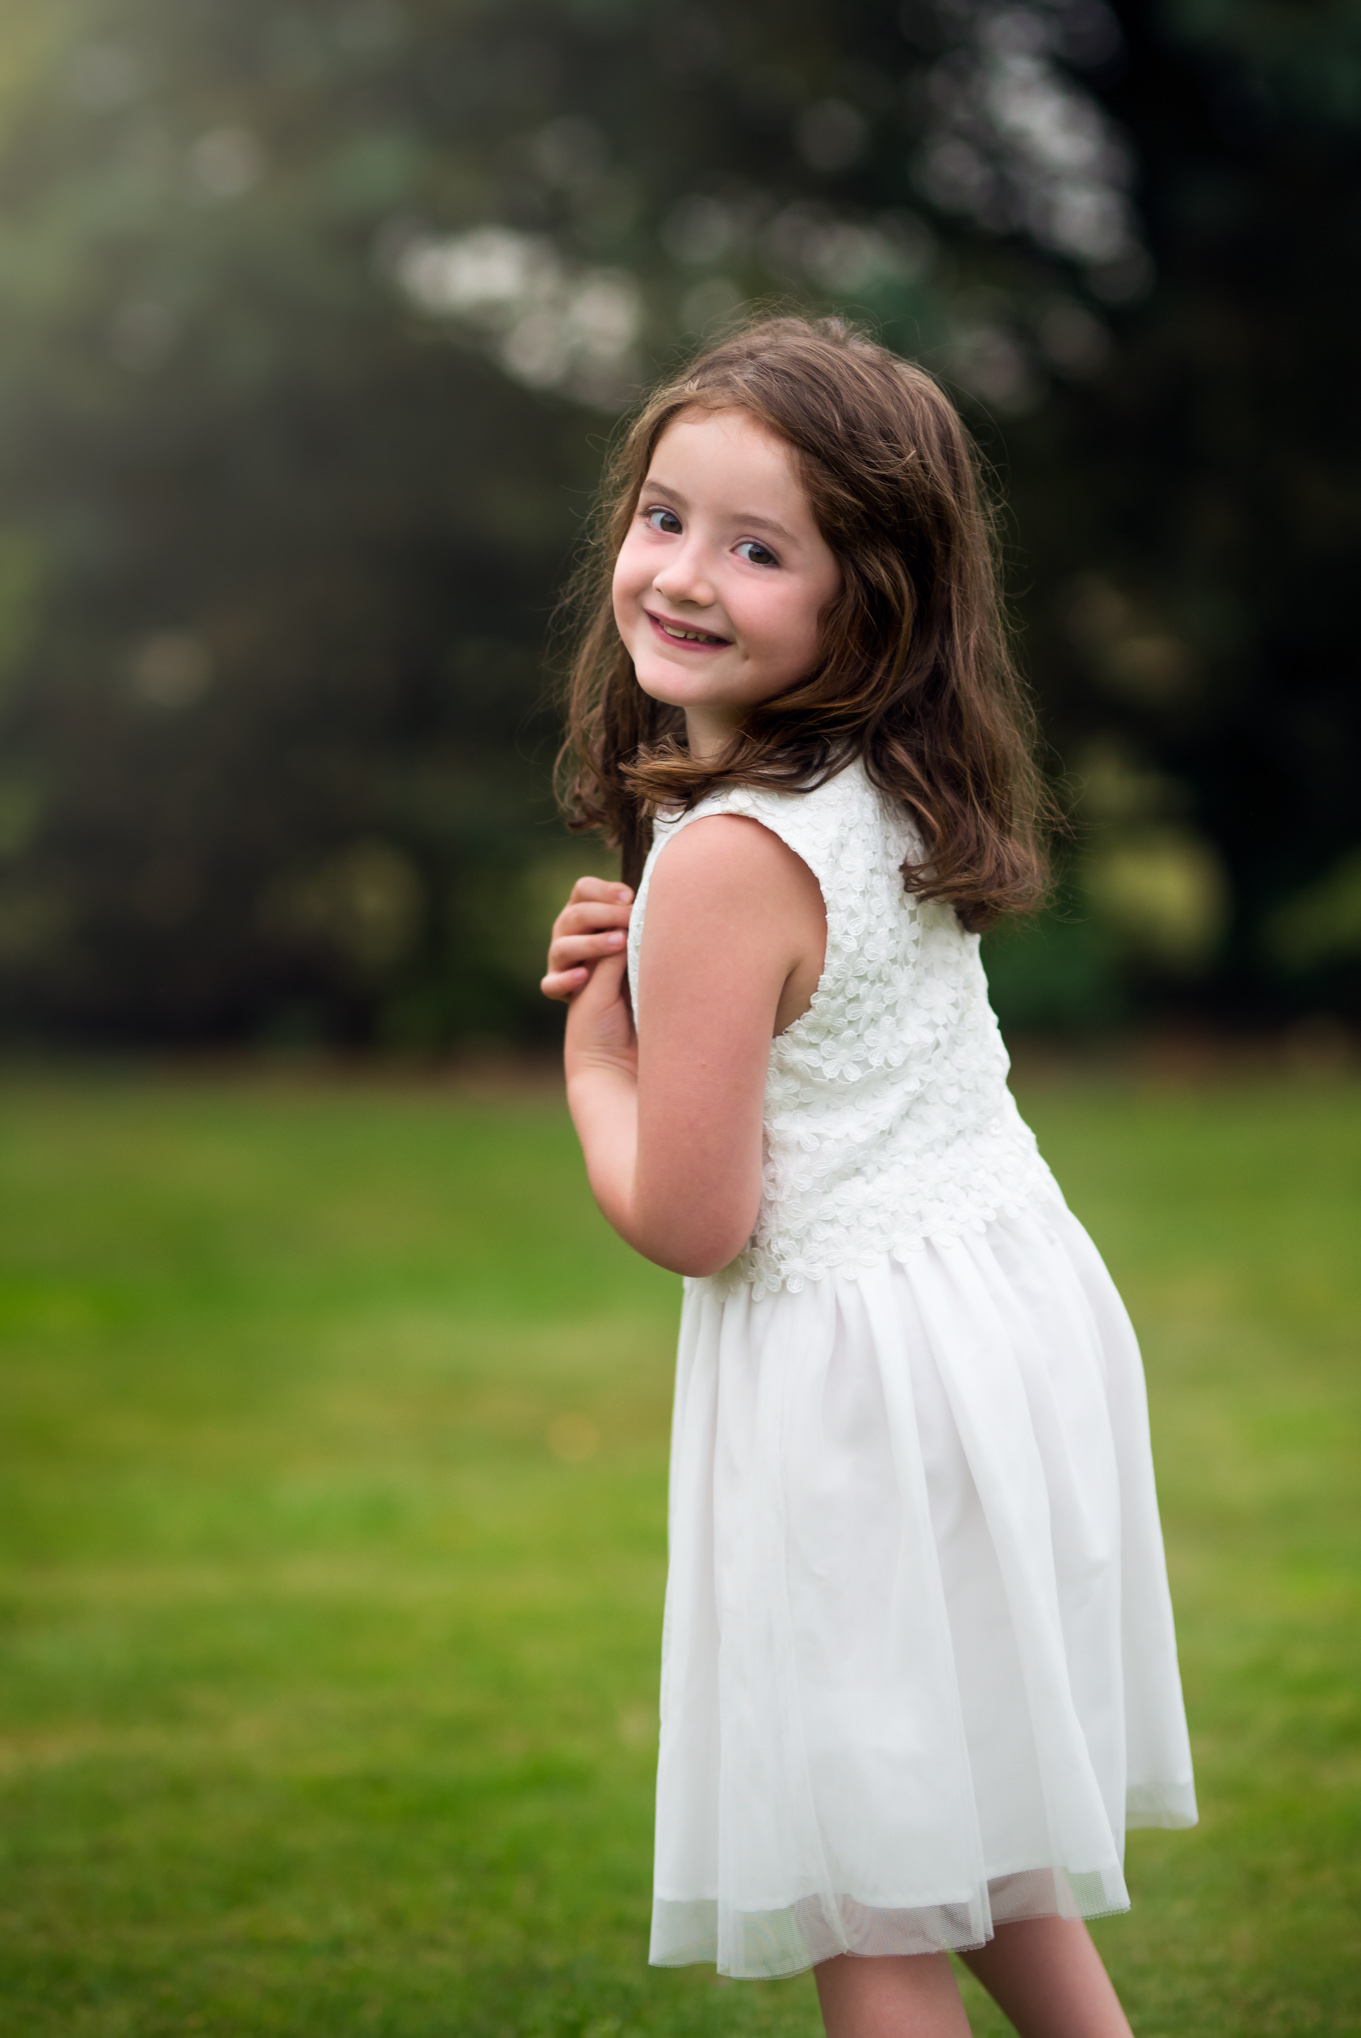 Adorable pose | Children's Photography